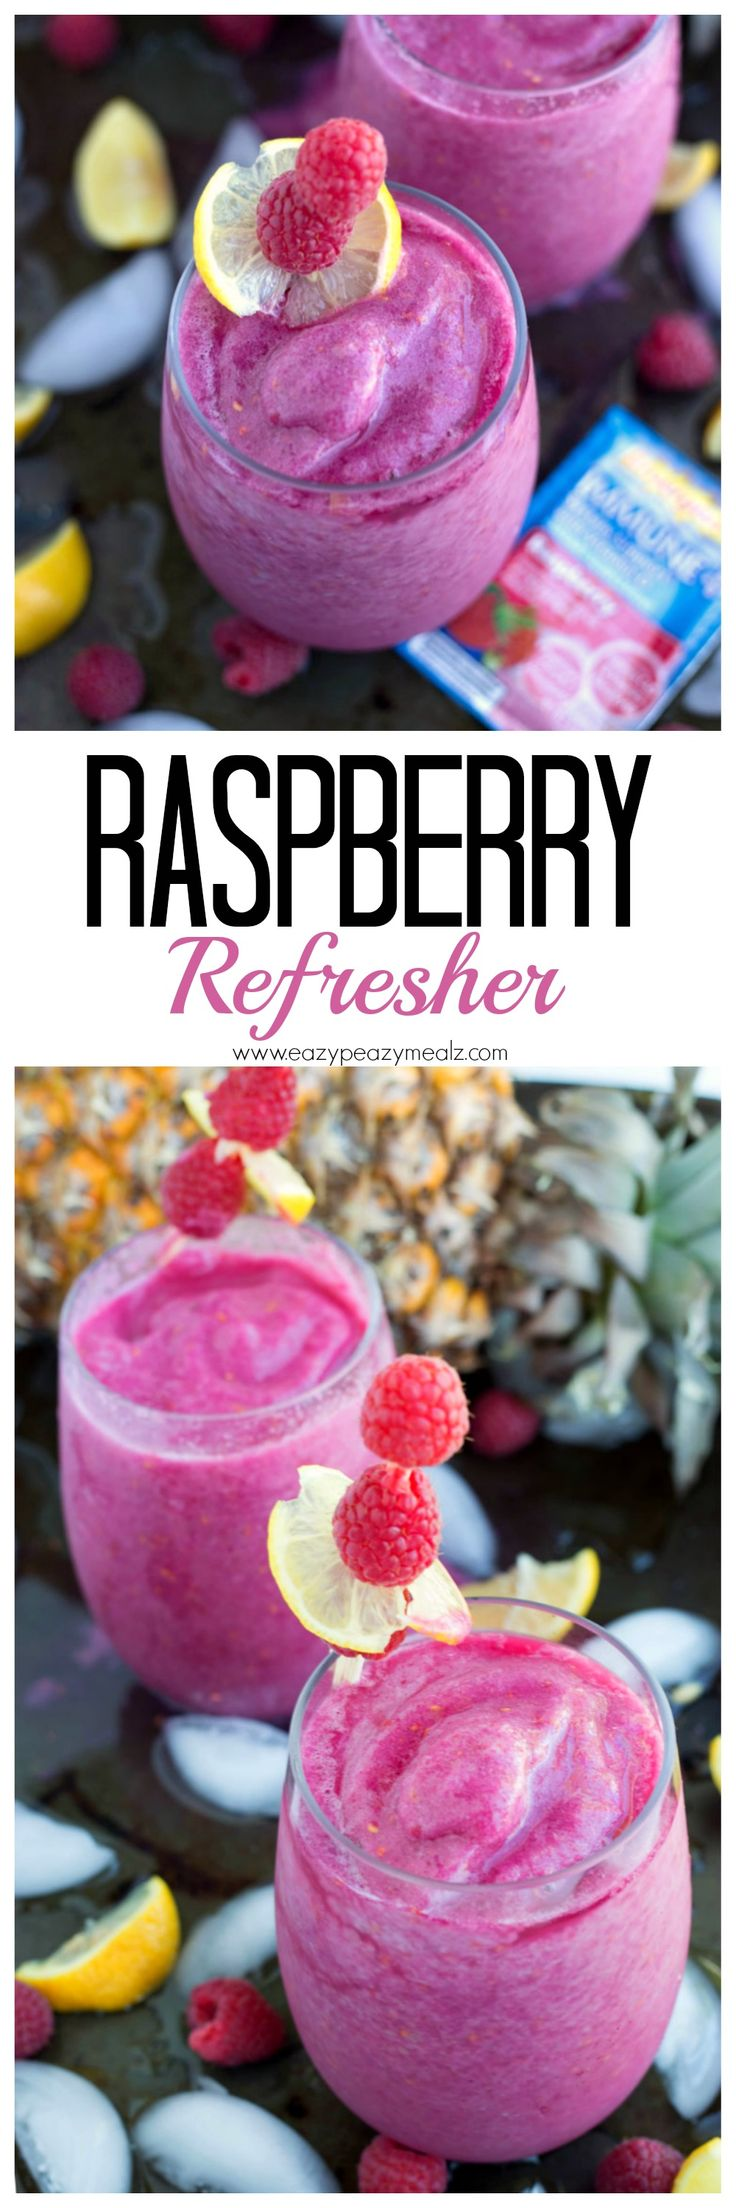 Raspberry Refresher: A frozen raspberry drink with immune support, perfect for sipping pool side. #ad #hydratedandhealthy - Eazy Peazy Mealz